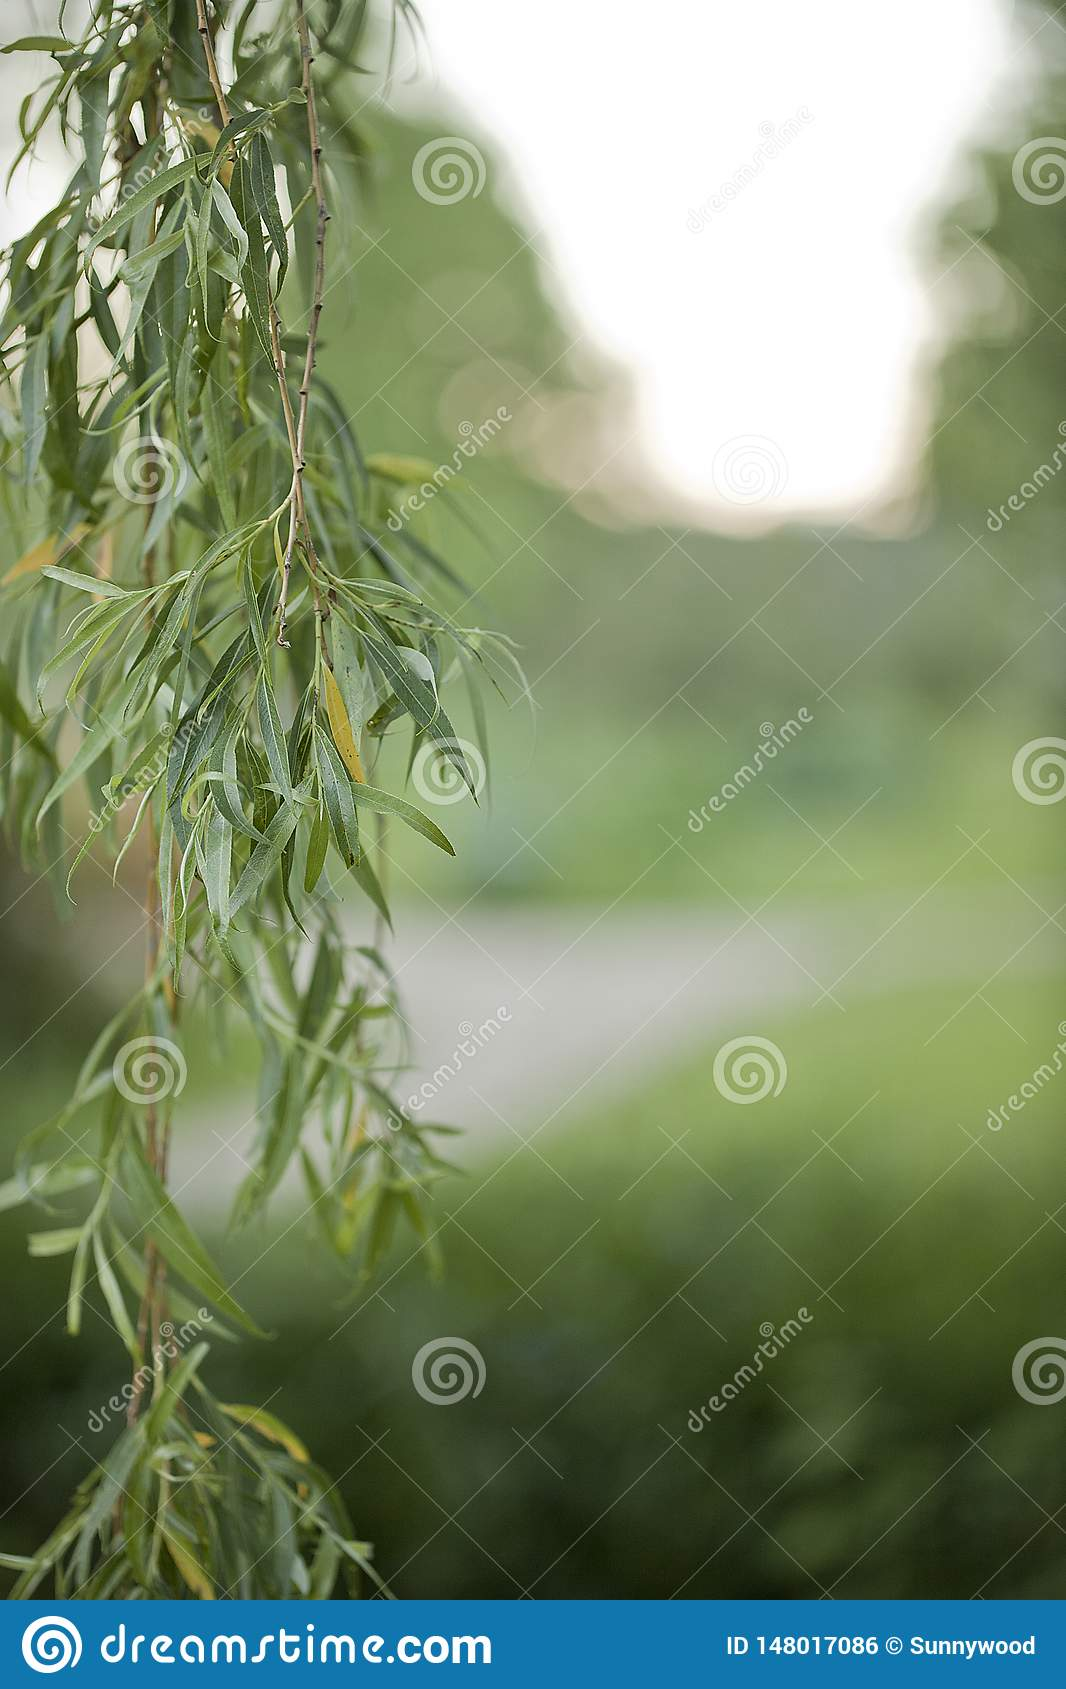 Weeping willow branch with leaves on a blurry background